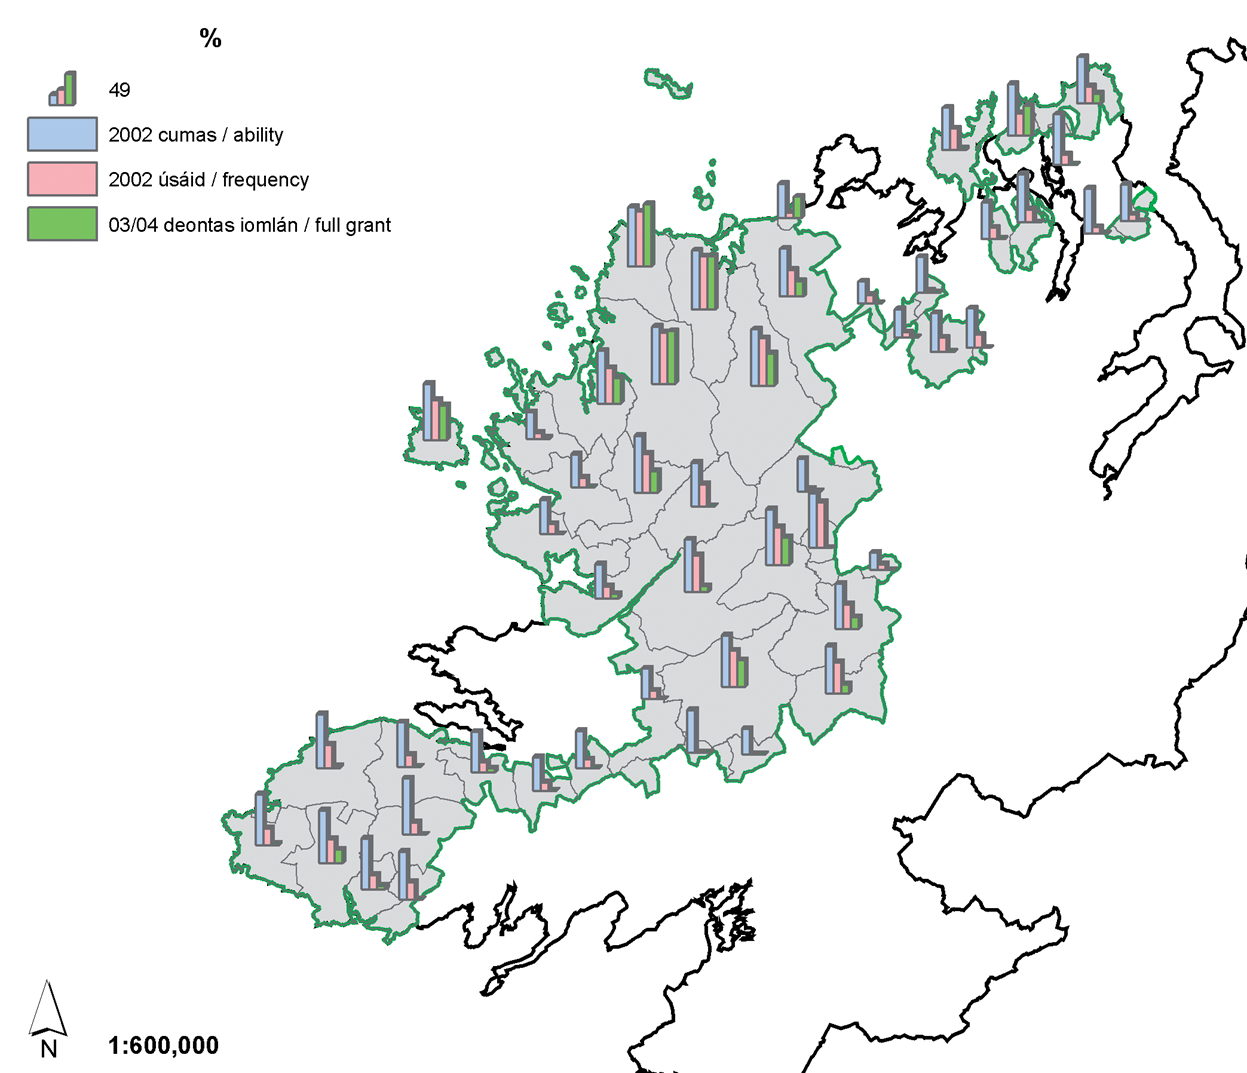 comparison between 2002 census data and slg data 2003 4 in the donegal gaeltacht districts courtesy of www ahg gov ie